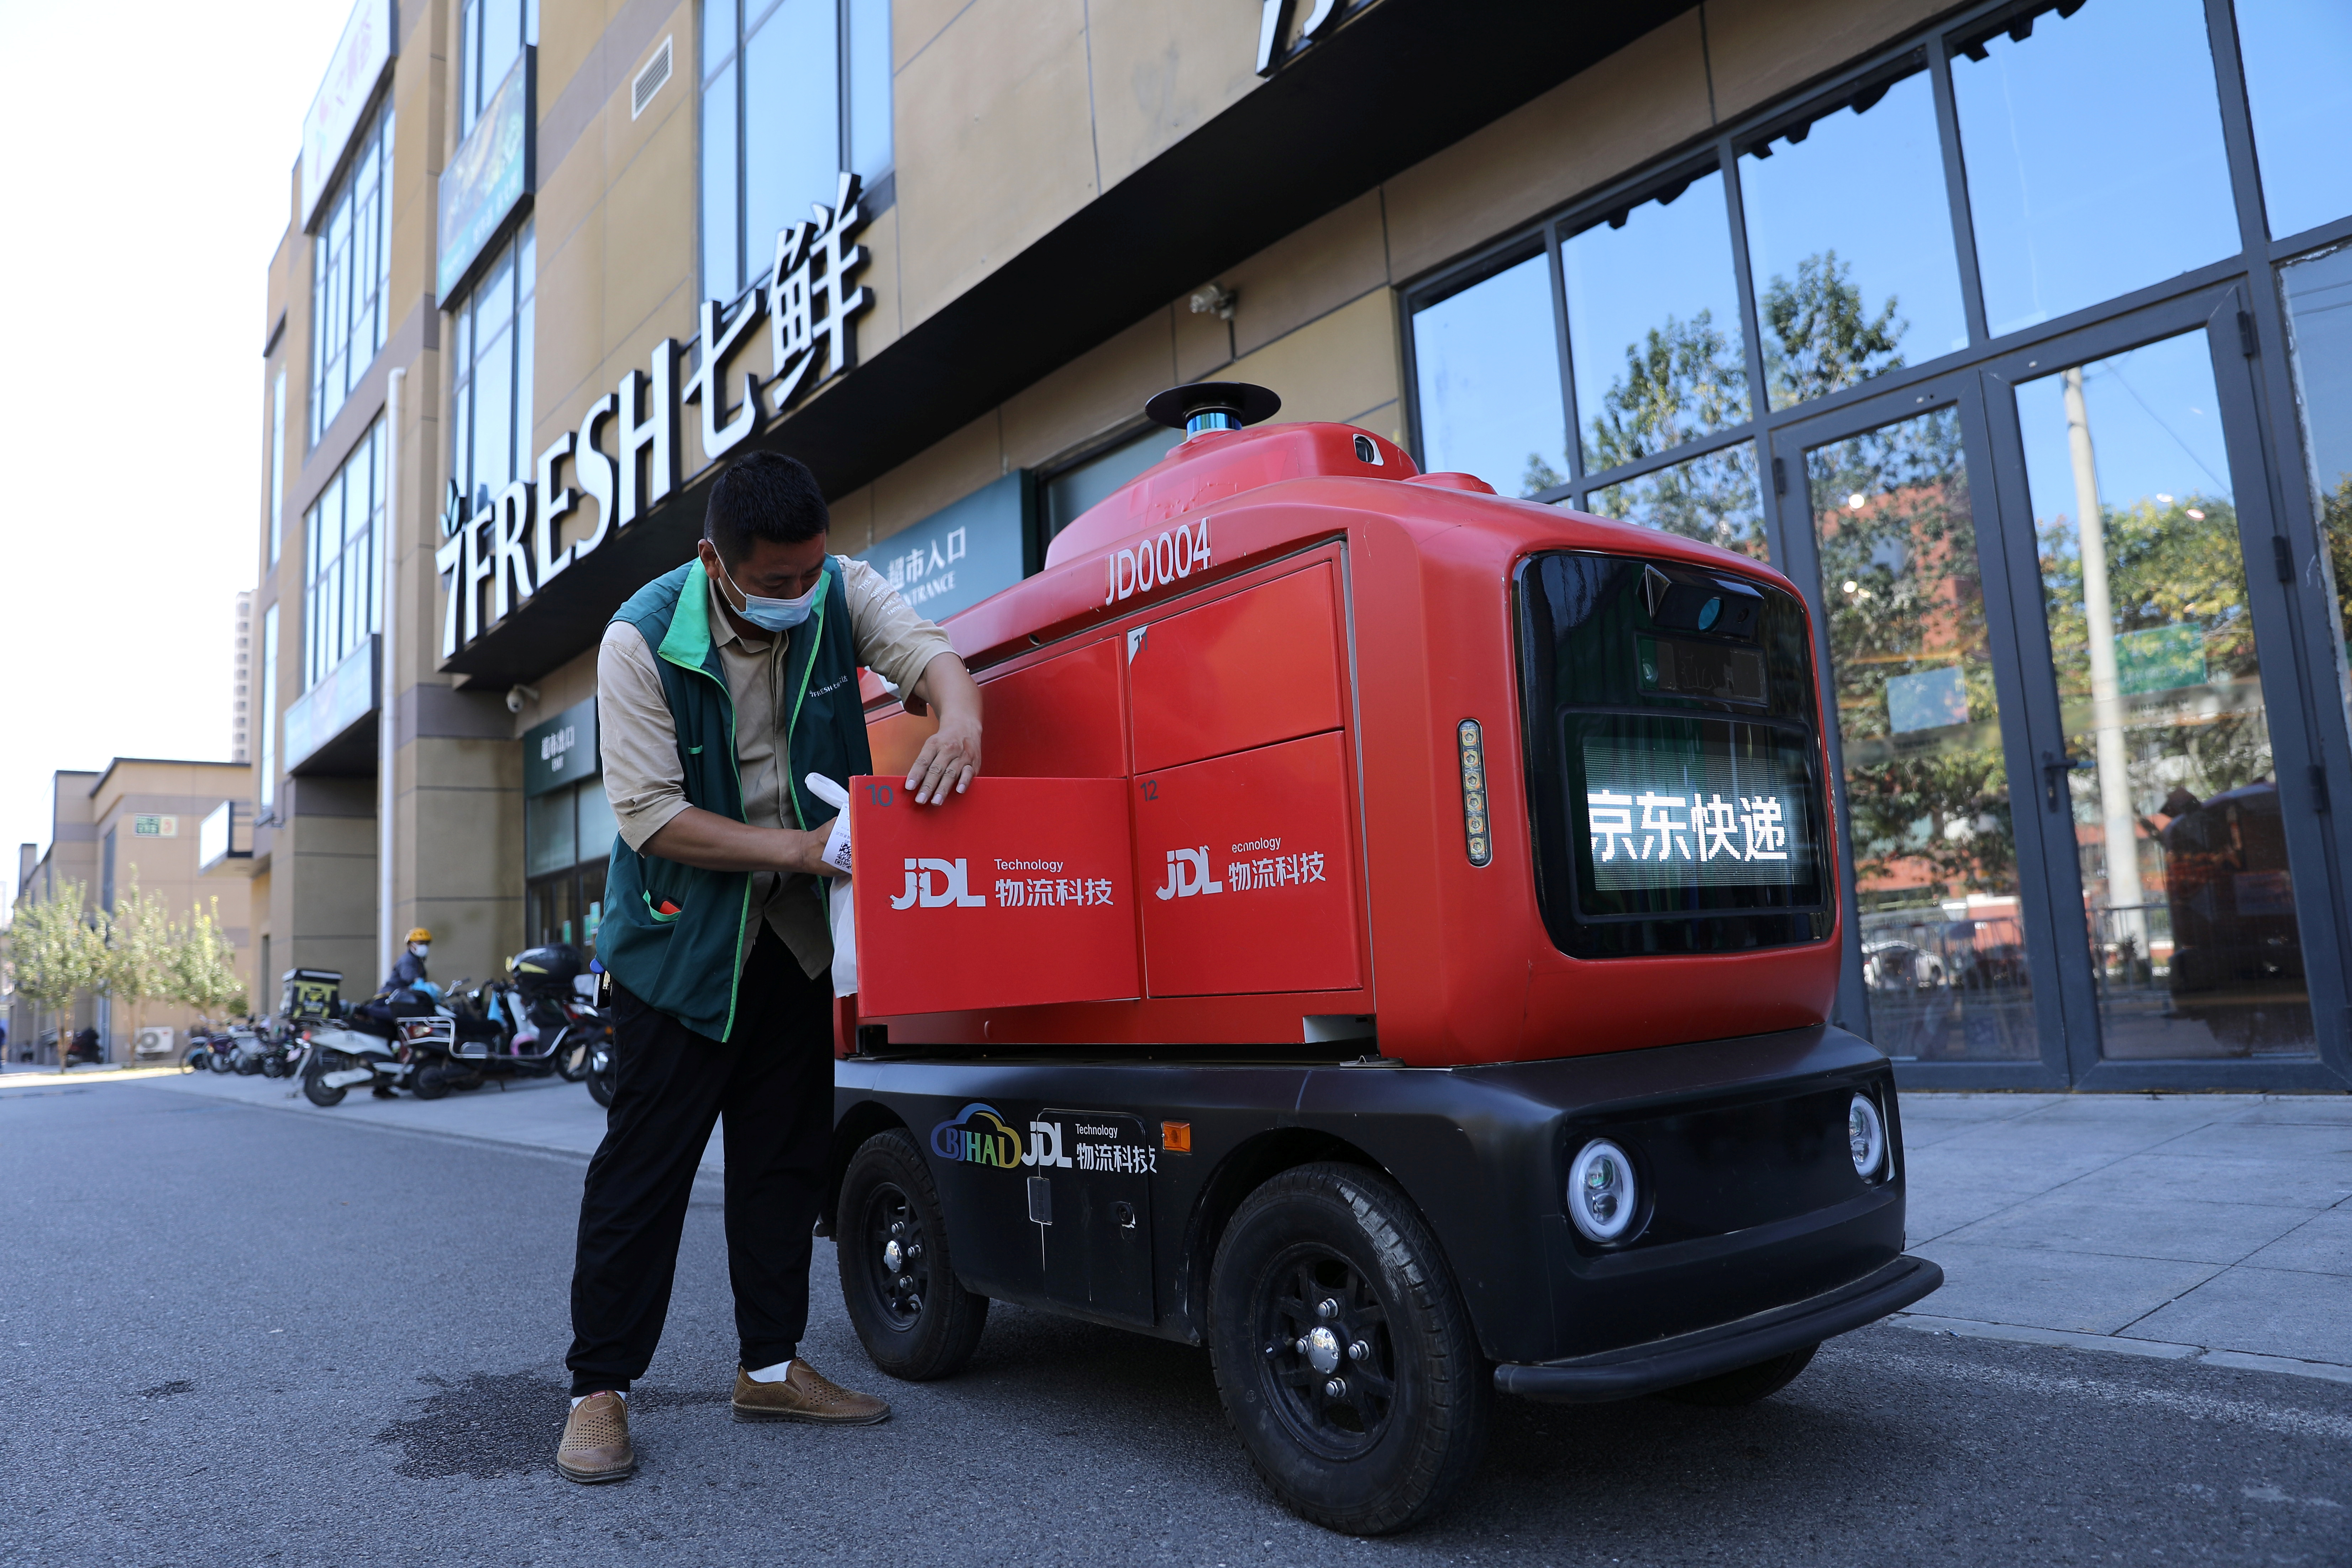 An employee from 7Fresh supermarket loads goods on an autonomous delivery vehicle by JD Logistics, the delivery arm of JD.com, in Beijing, China September 22, 2021. REUTERS/Tingshu Wang